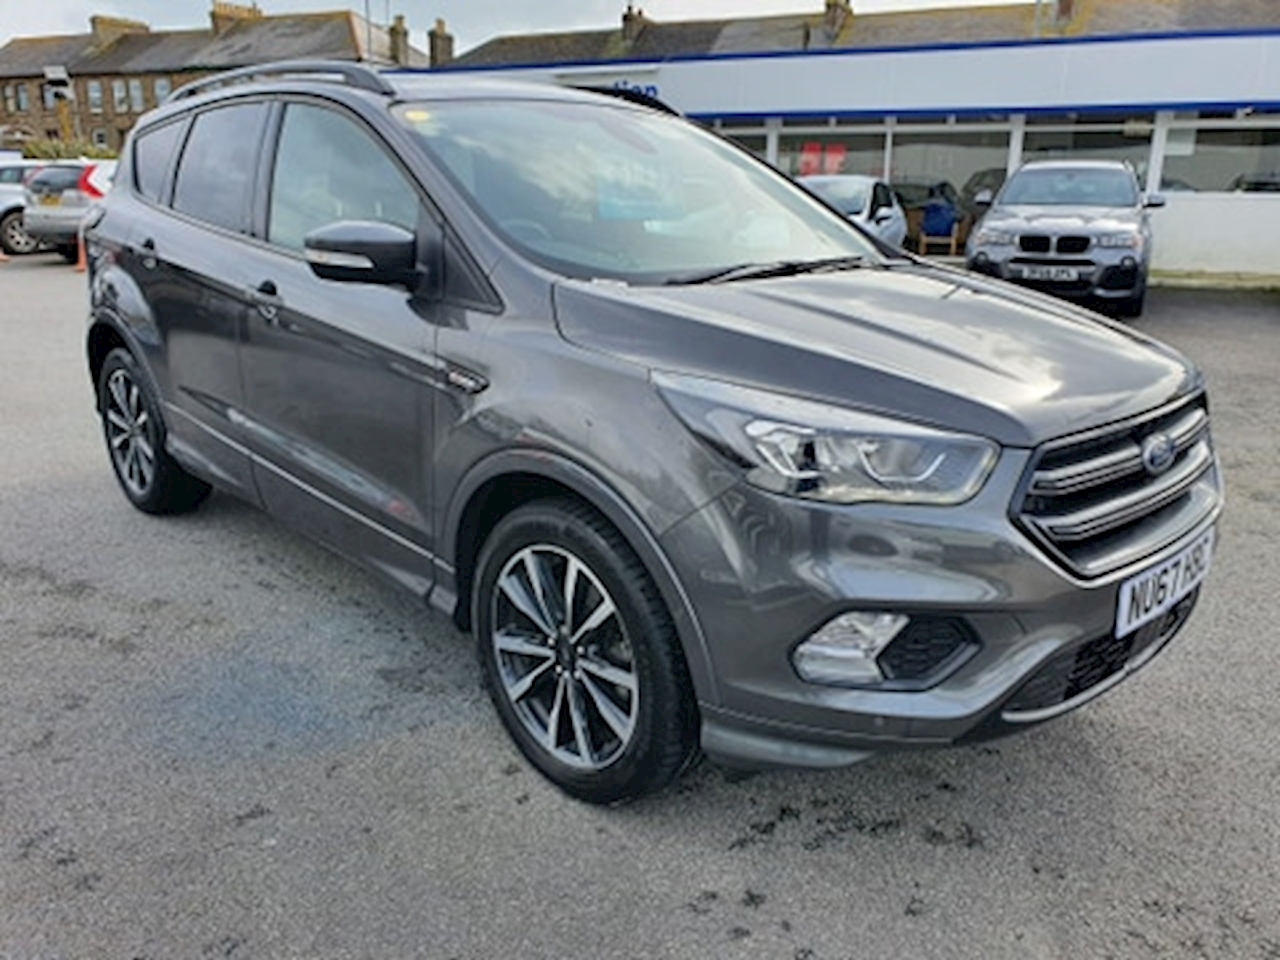 Ford Kuga St-Line Tdci Hatchback 2.0 Manual Diesel